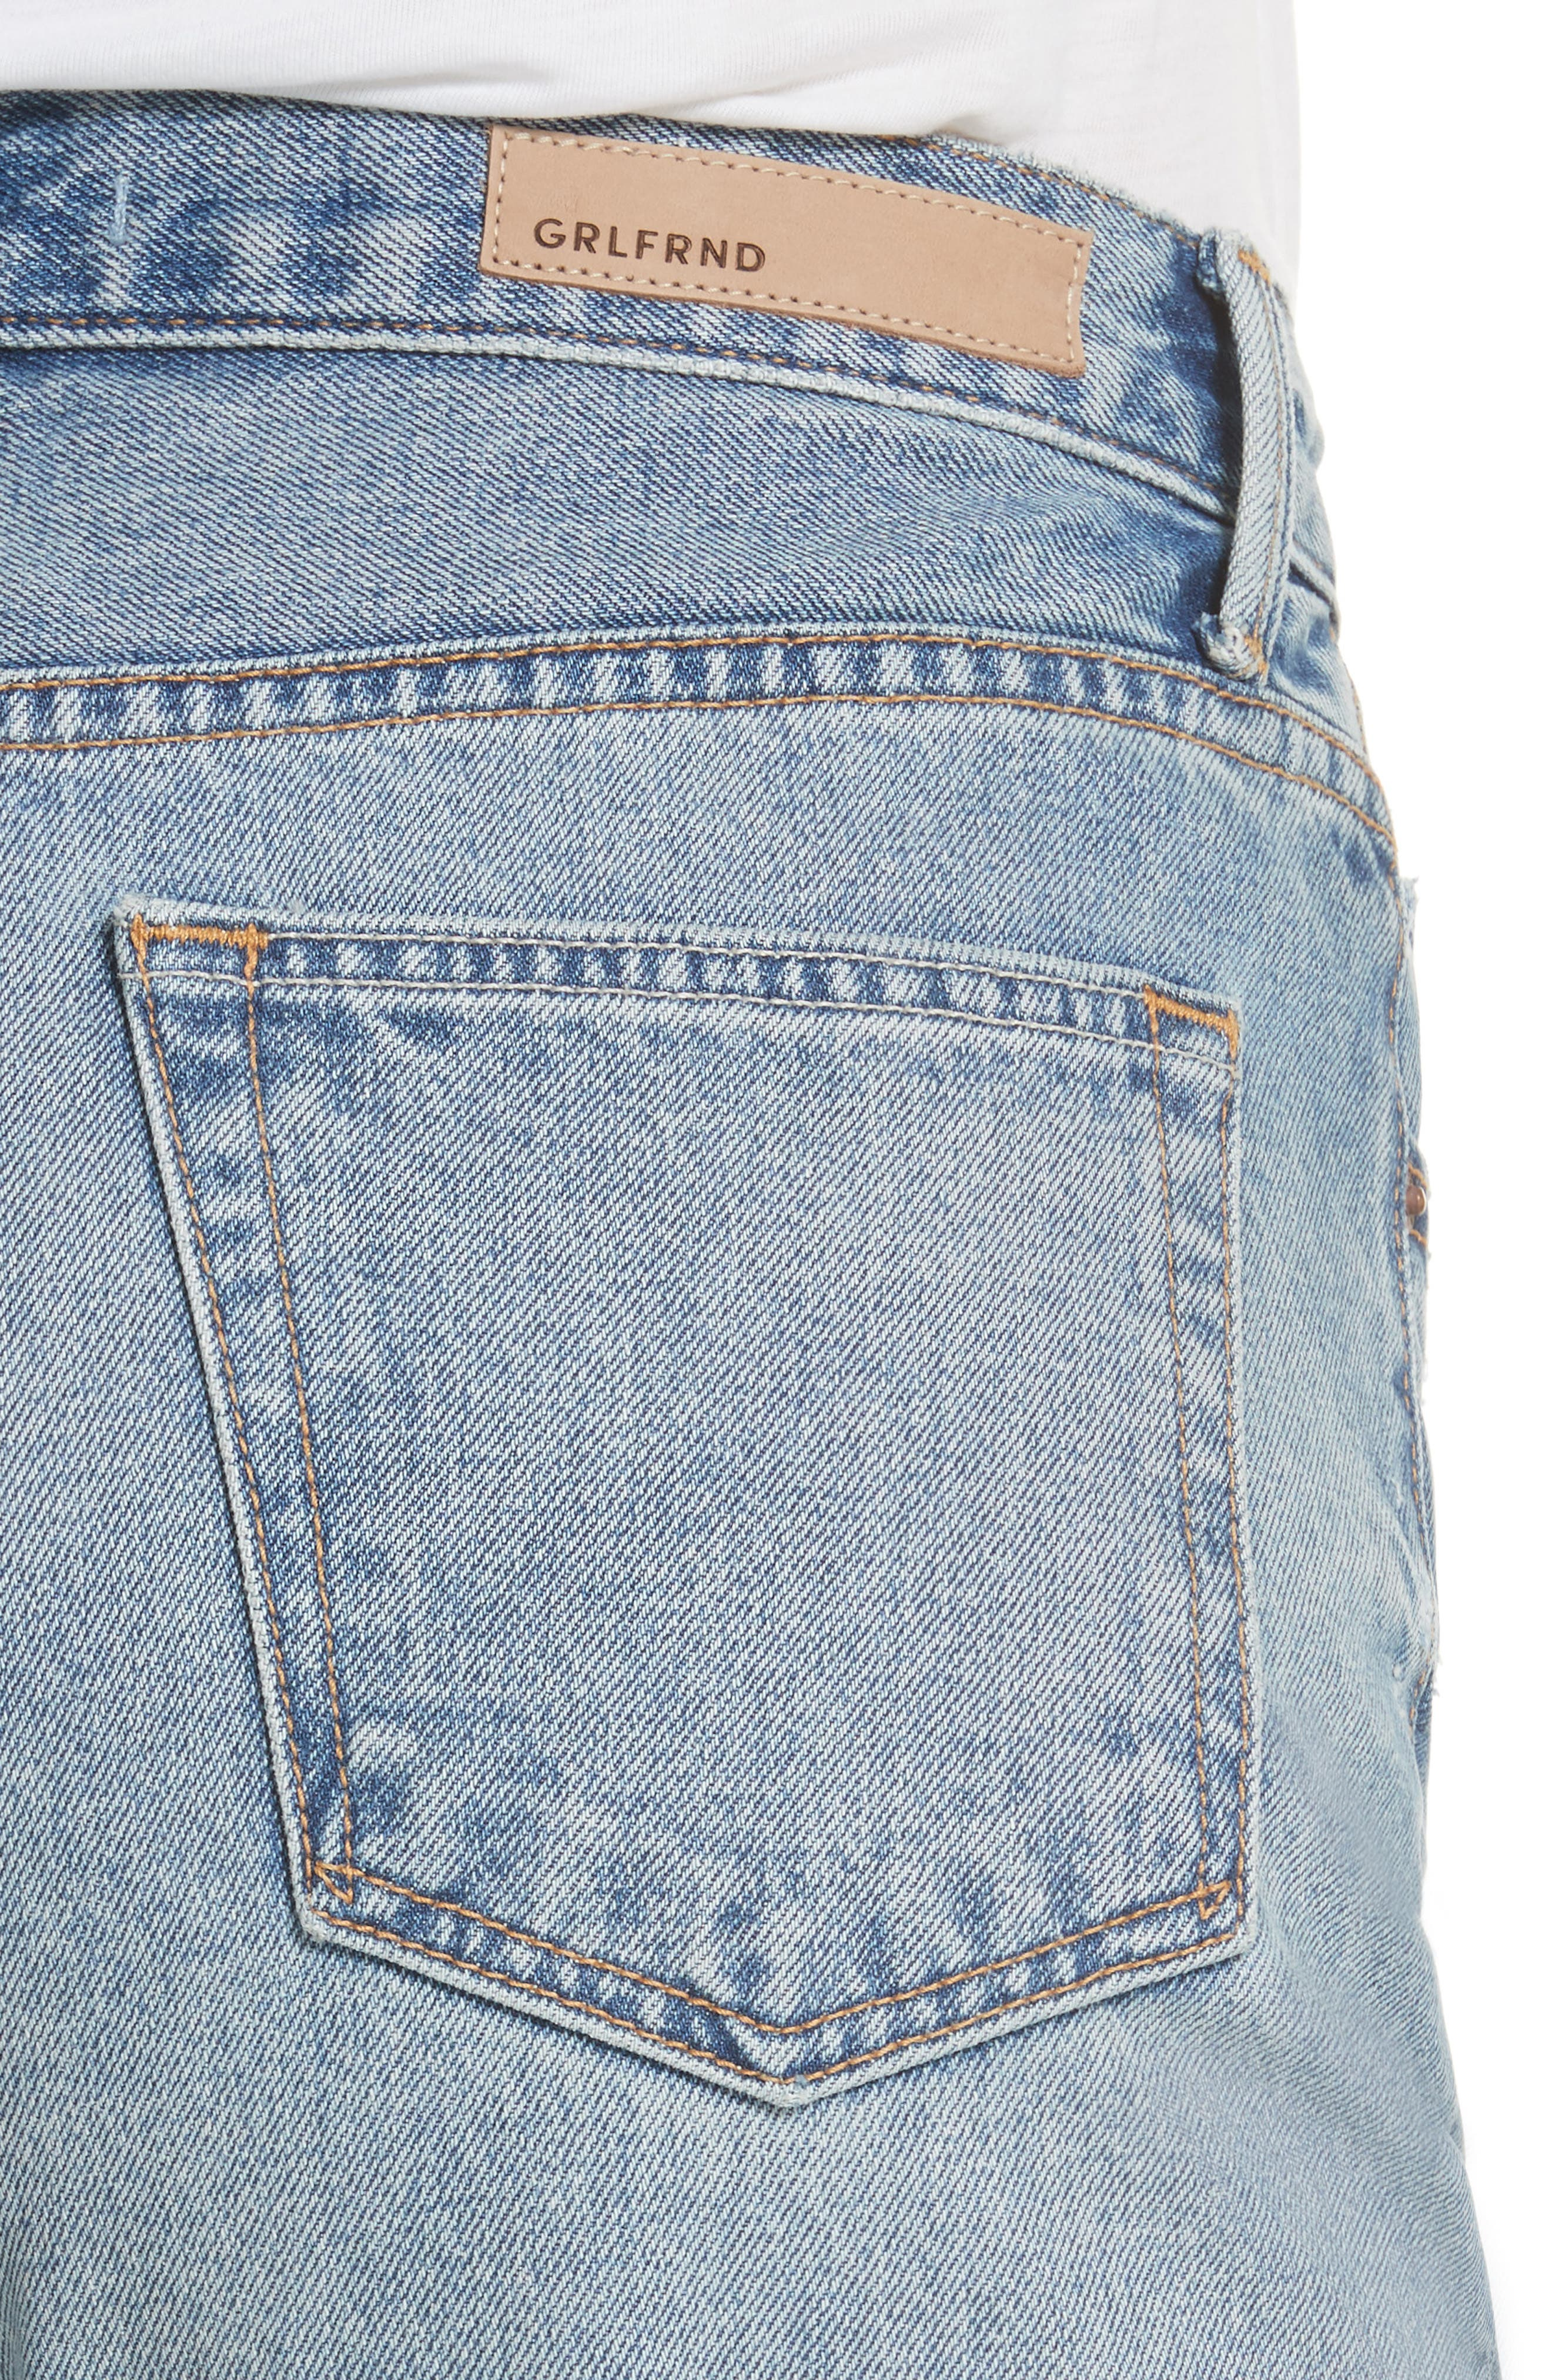 Helena Ripped Rigid High Waist Straight Jeans,                             Alternate thumbnail 4, color,                             487